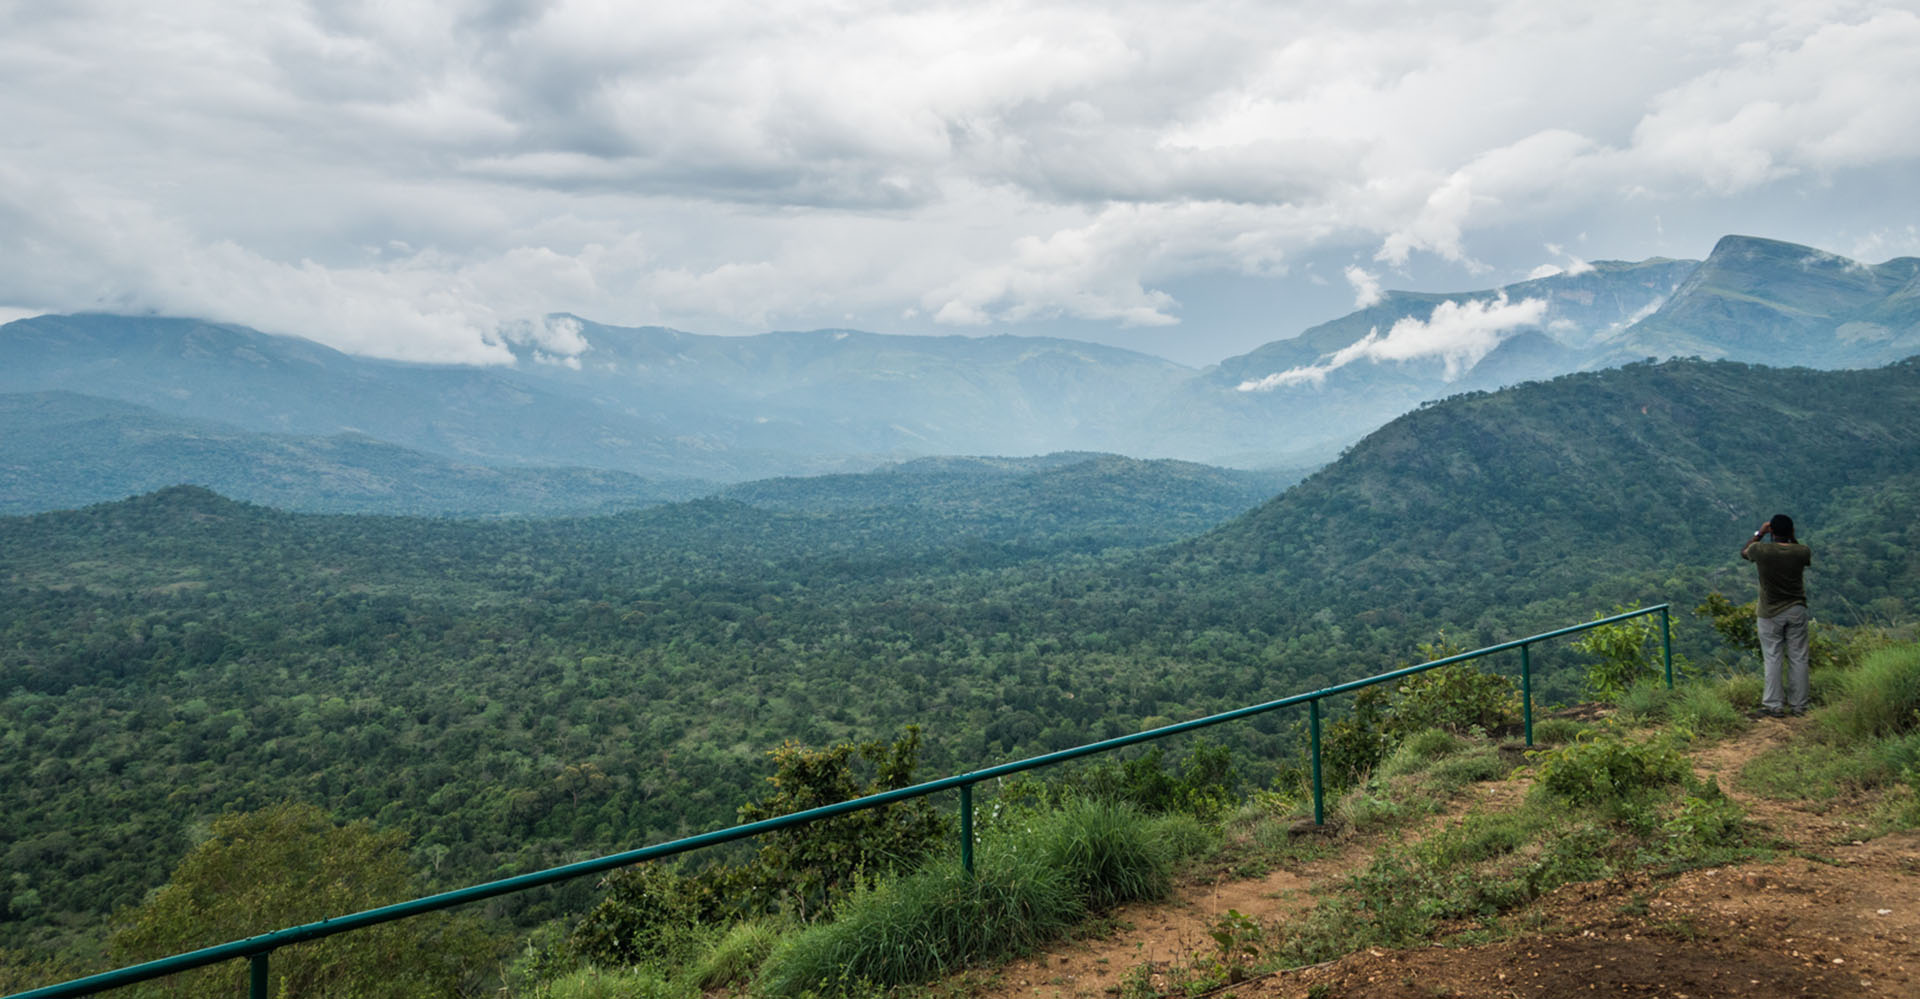 Monsoons in Kerala – The Hills